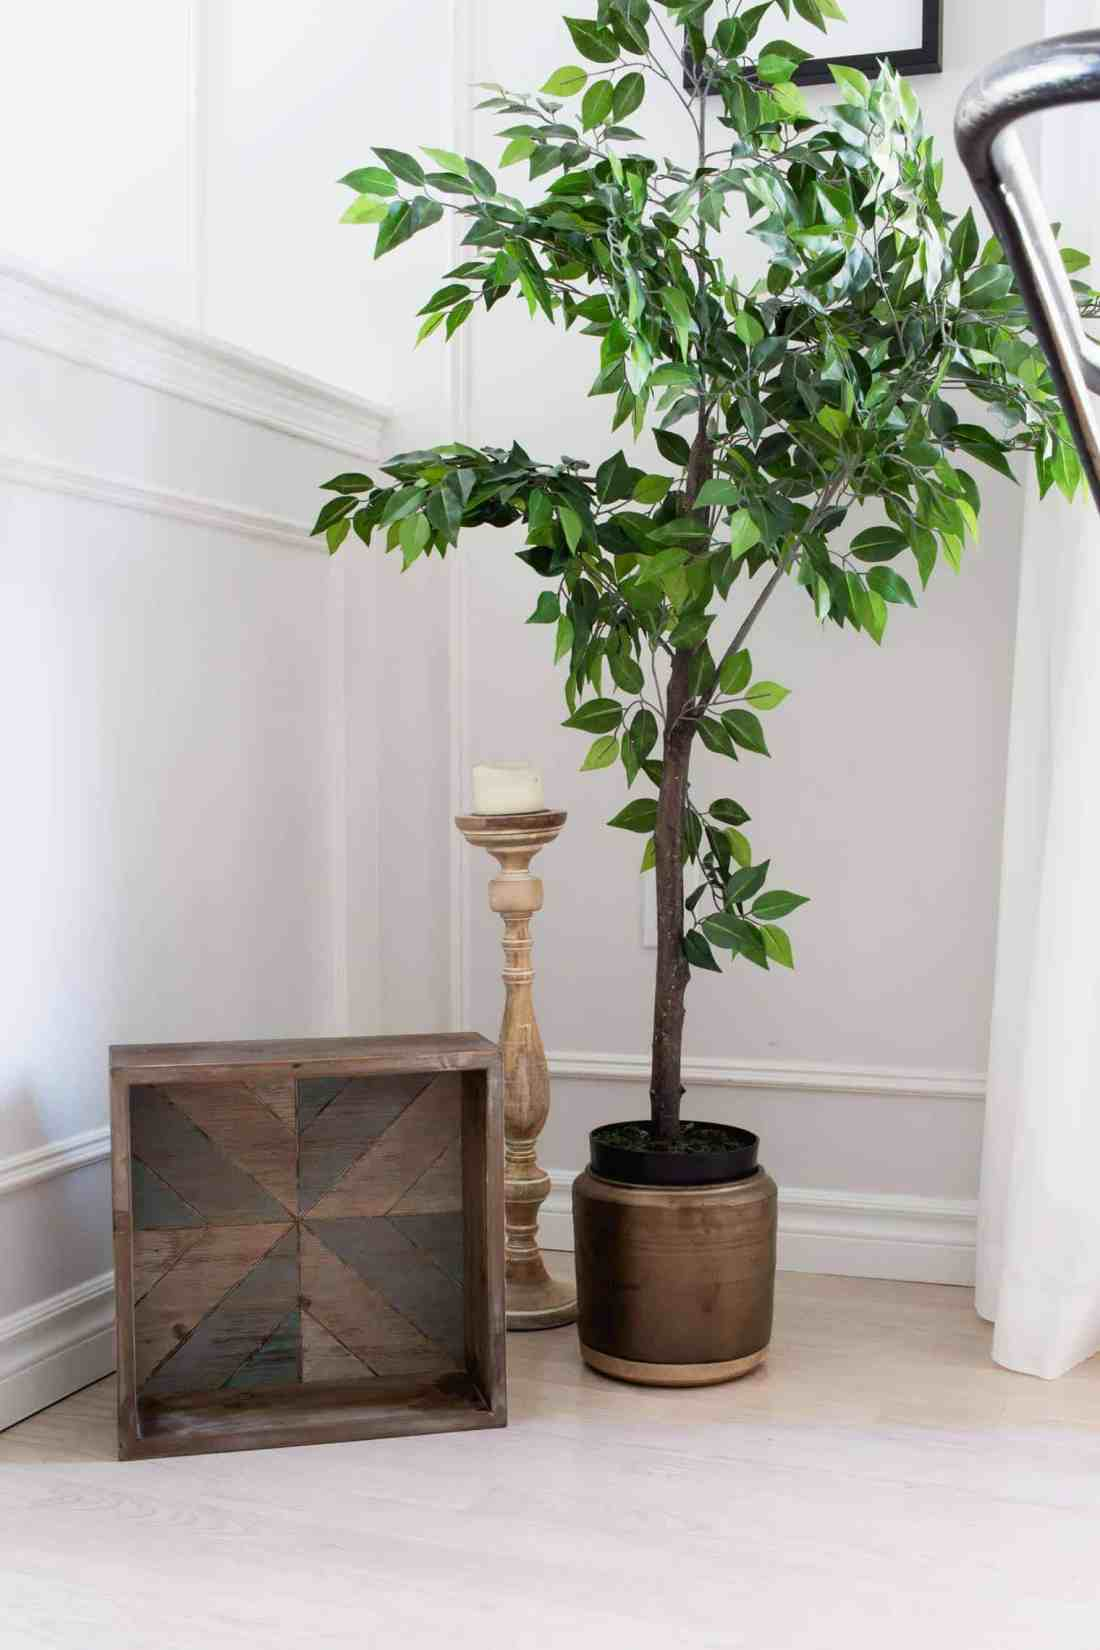 Faux tree in a pot with decorative box and candlestand.